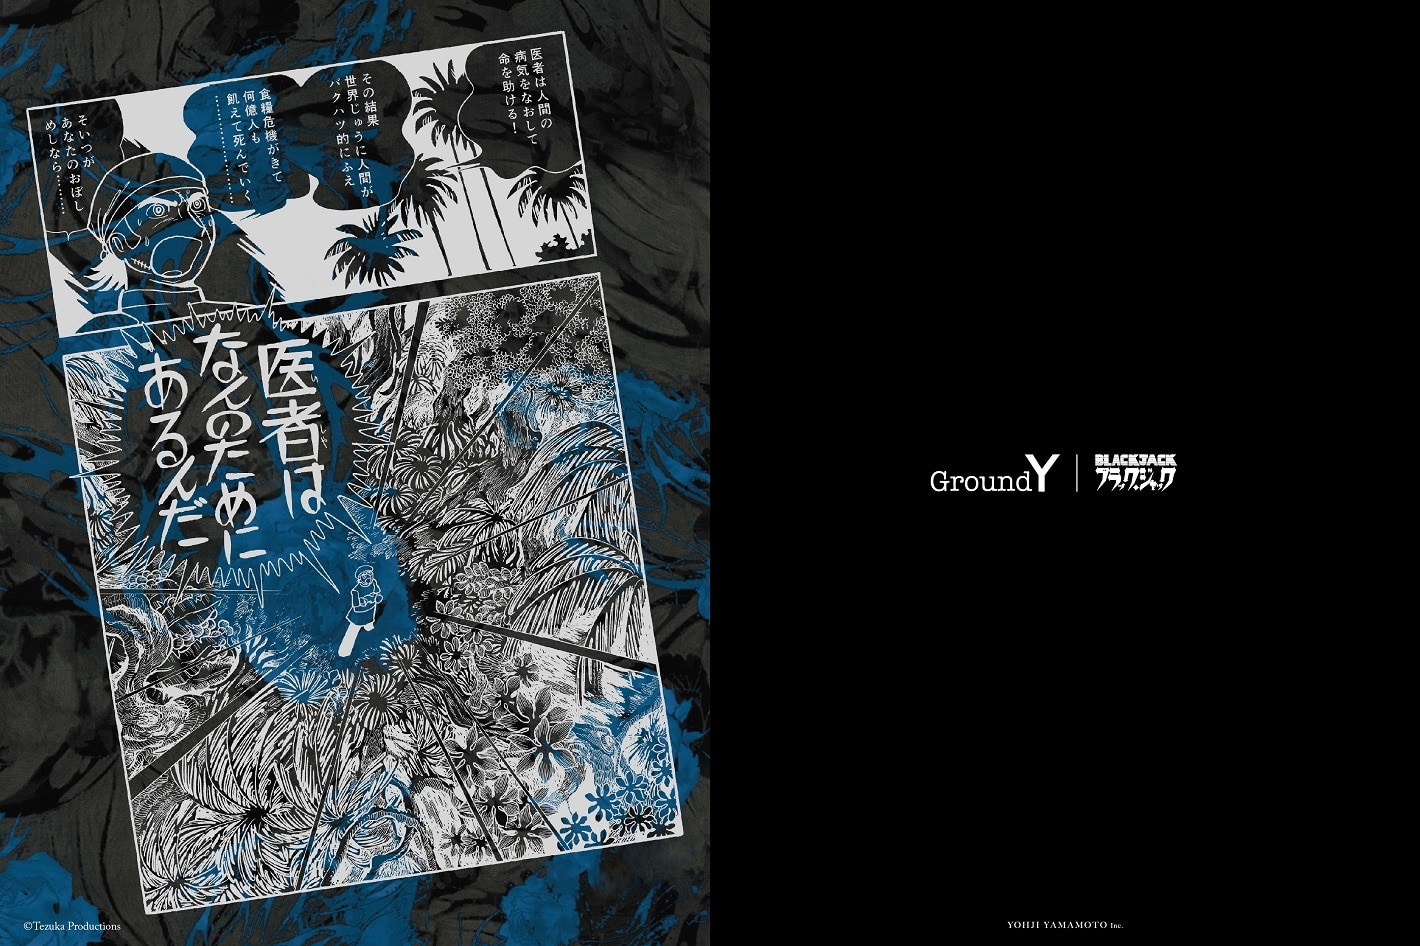 Ground Y × BLACK JACK COLLECTION